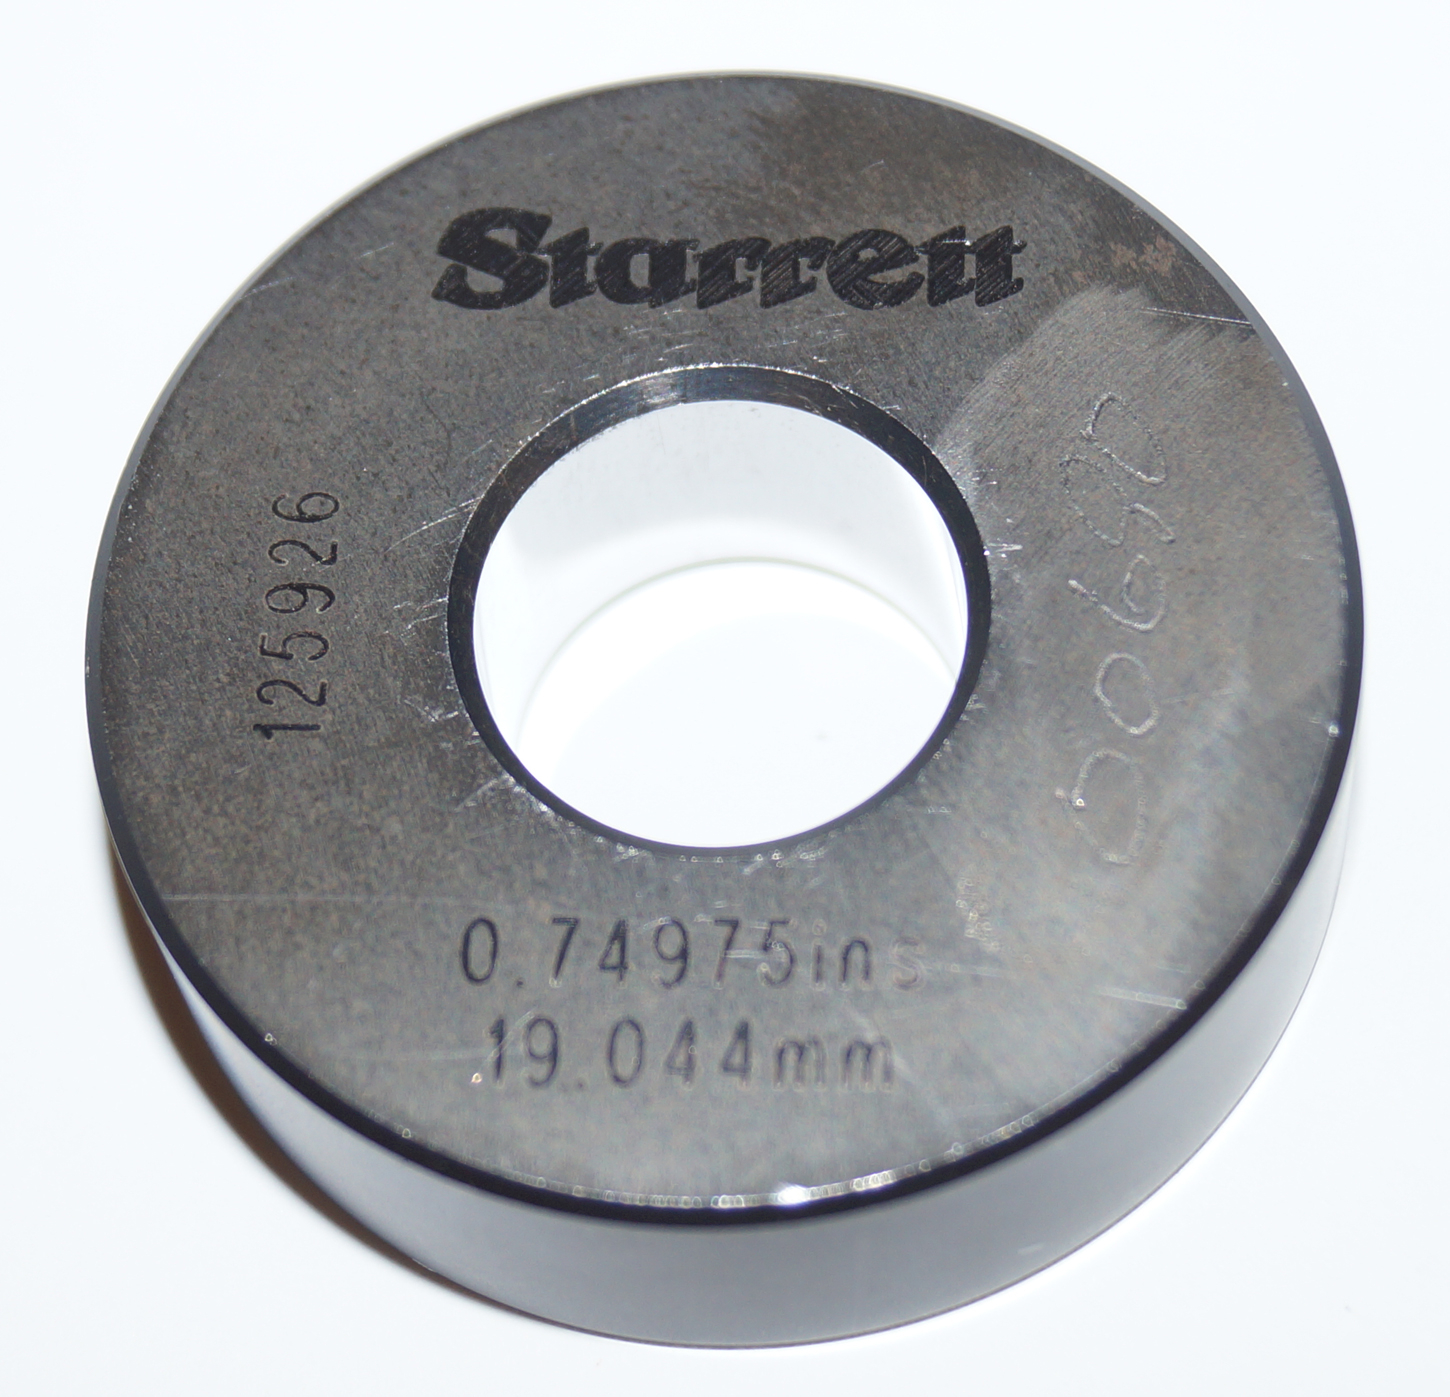 Starrett Master Setting Ring Gage .75 0.74975 19.044mm